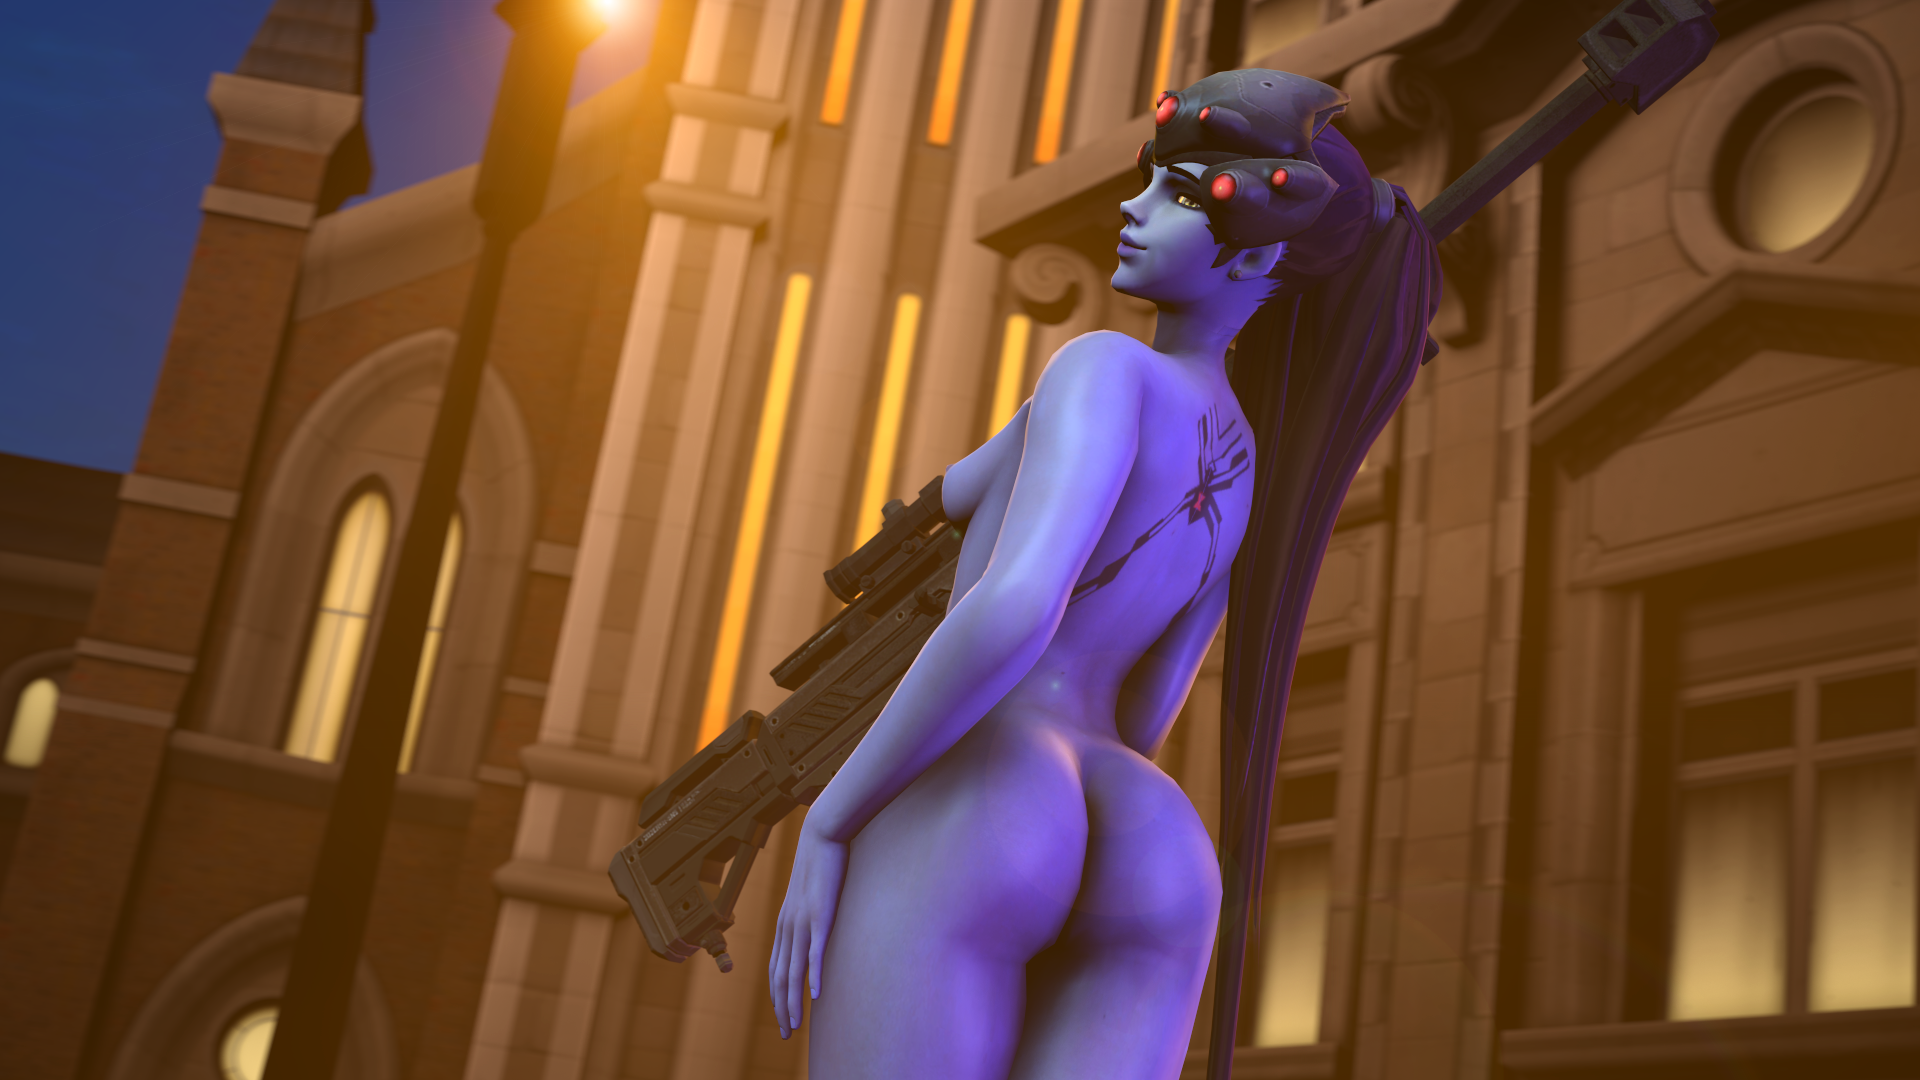 Overlook Widowmaker